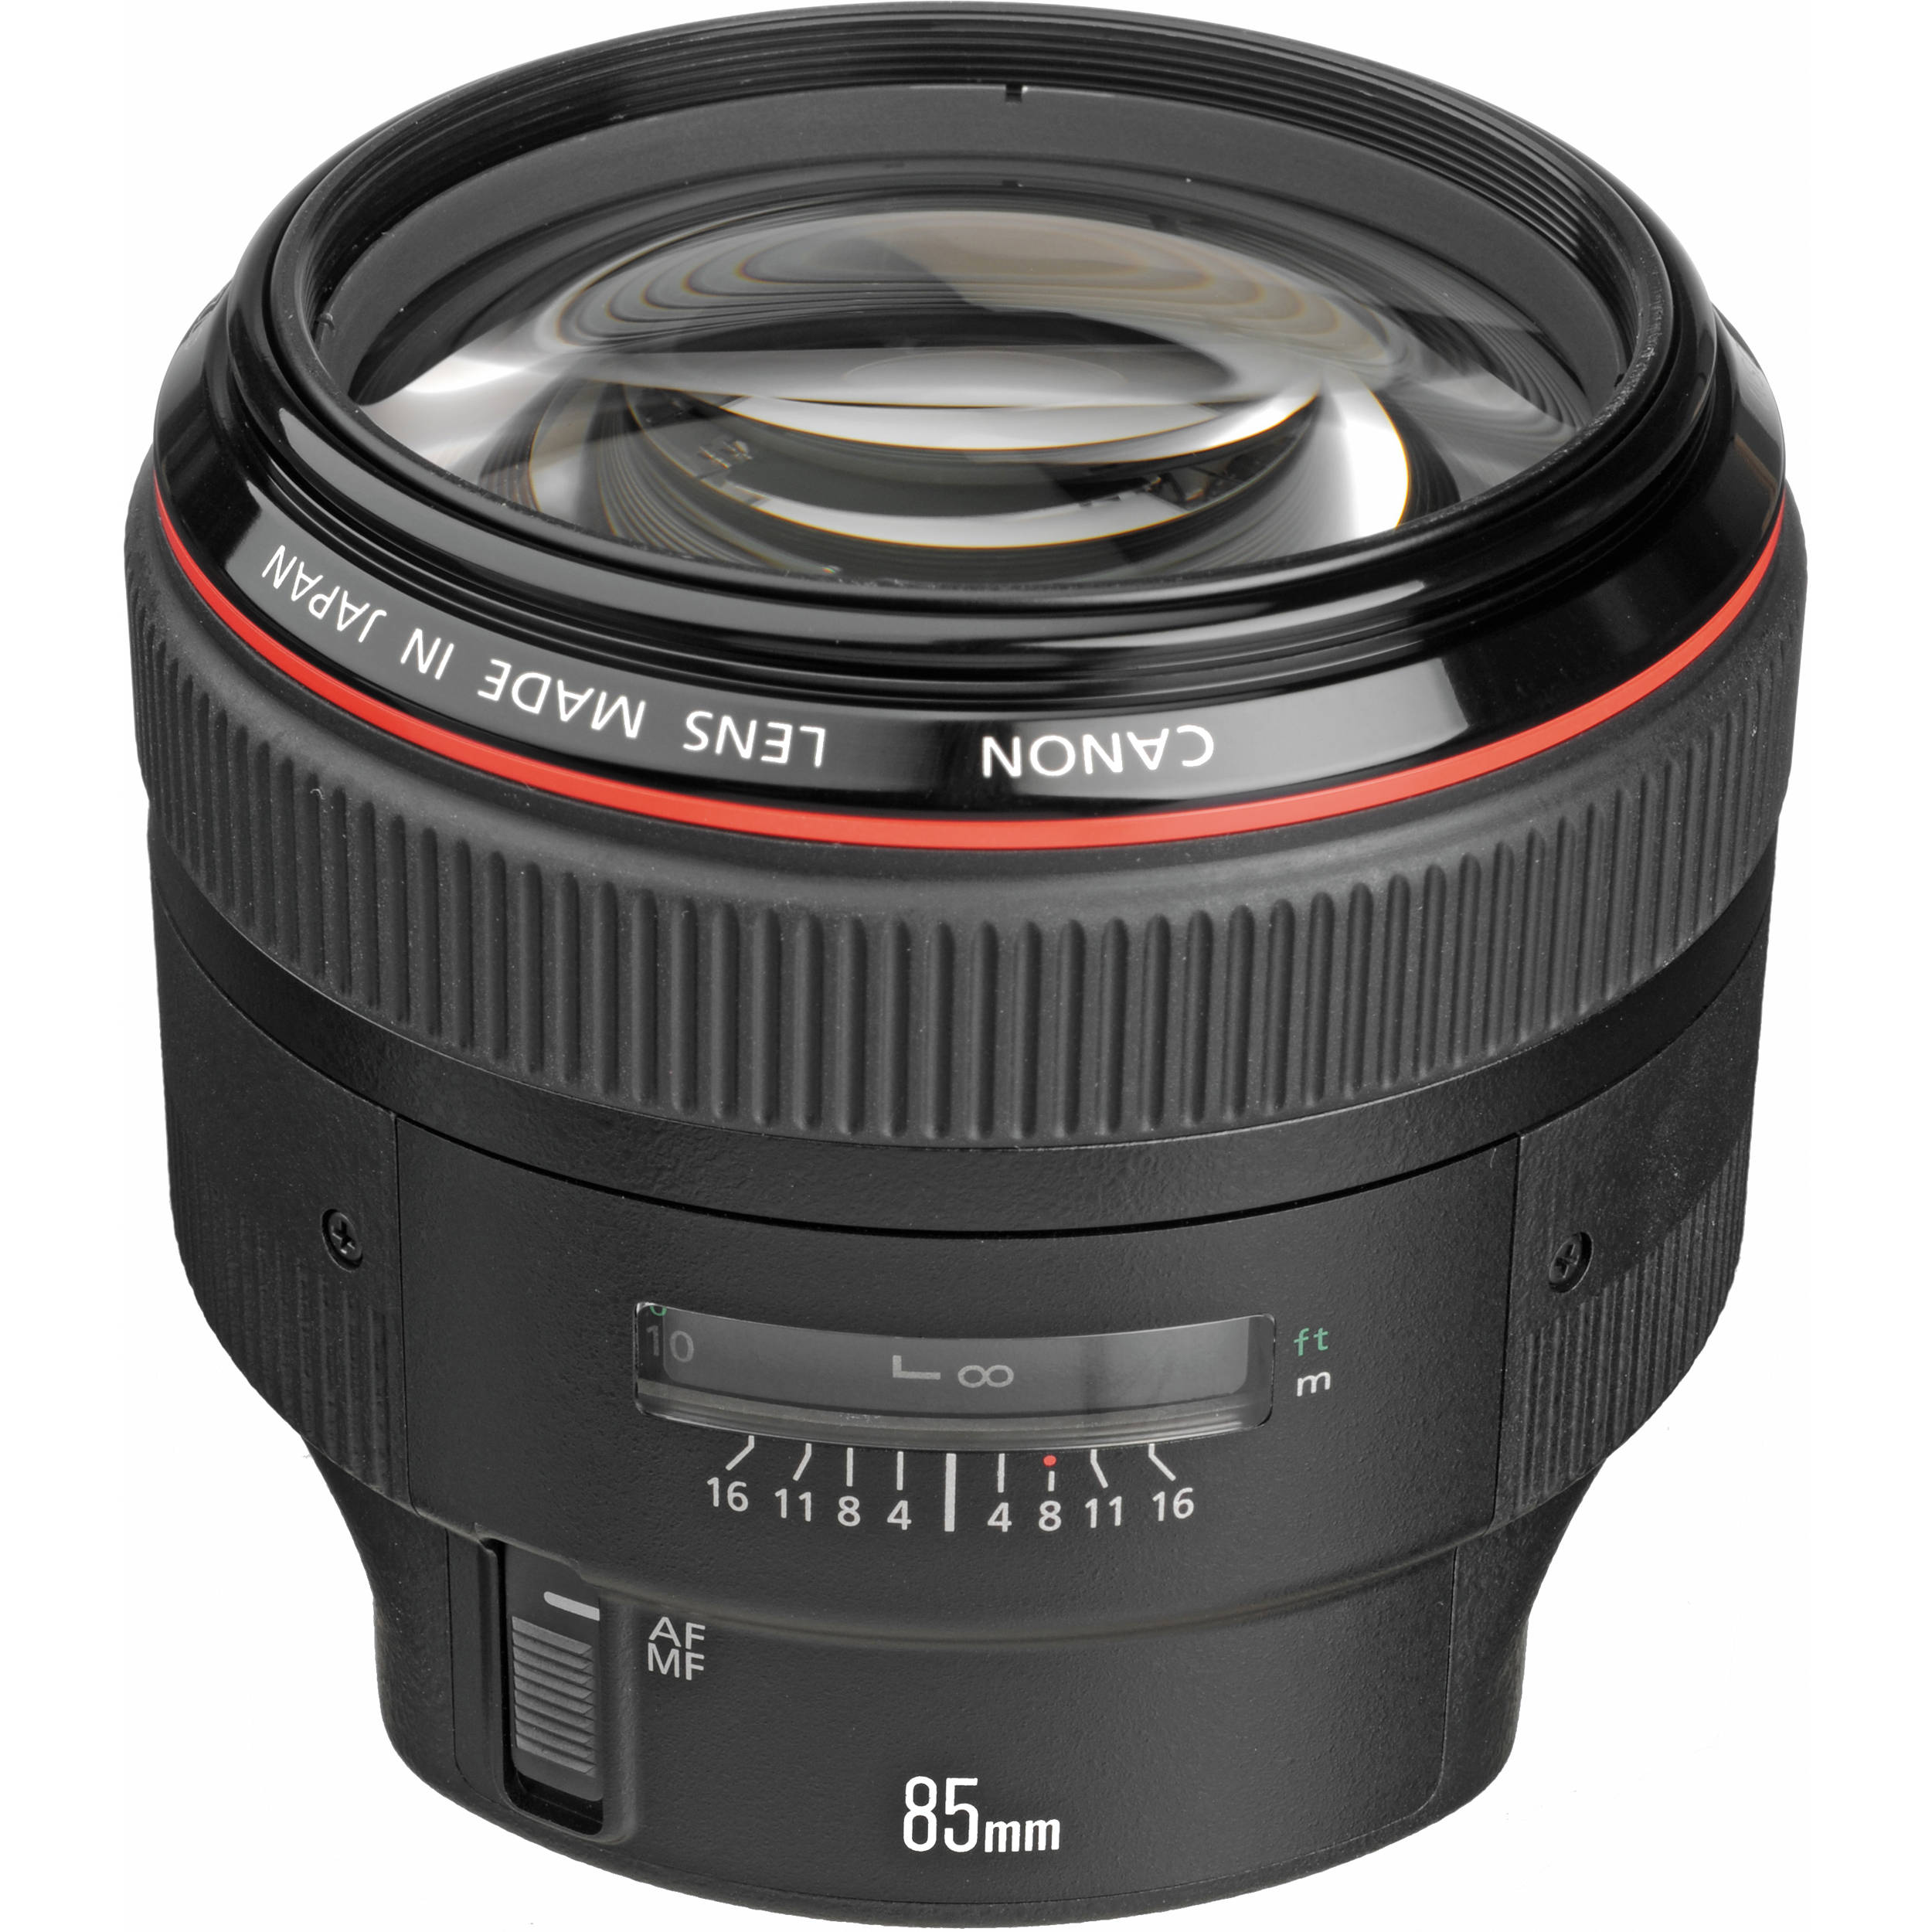 9 of the Best Canon-fit Lenses for Portraits - What Digital Camera